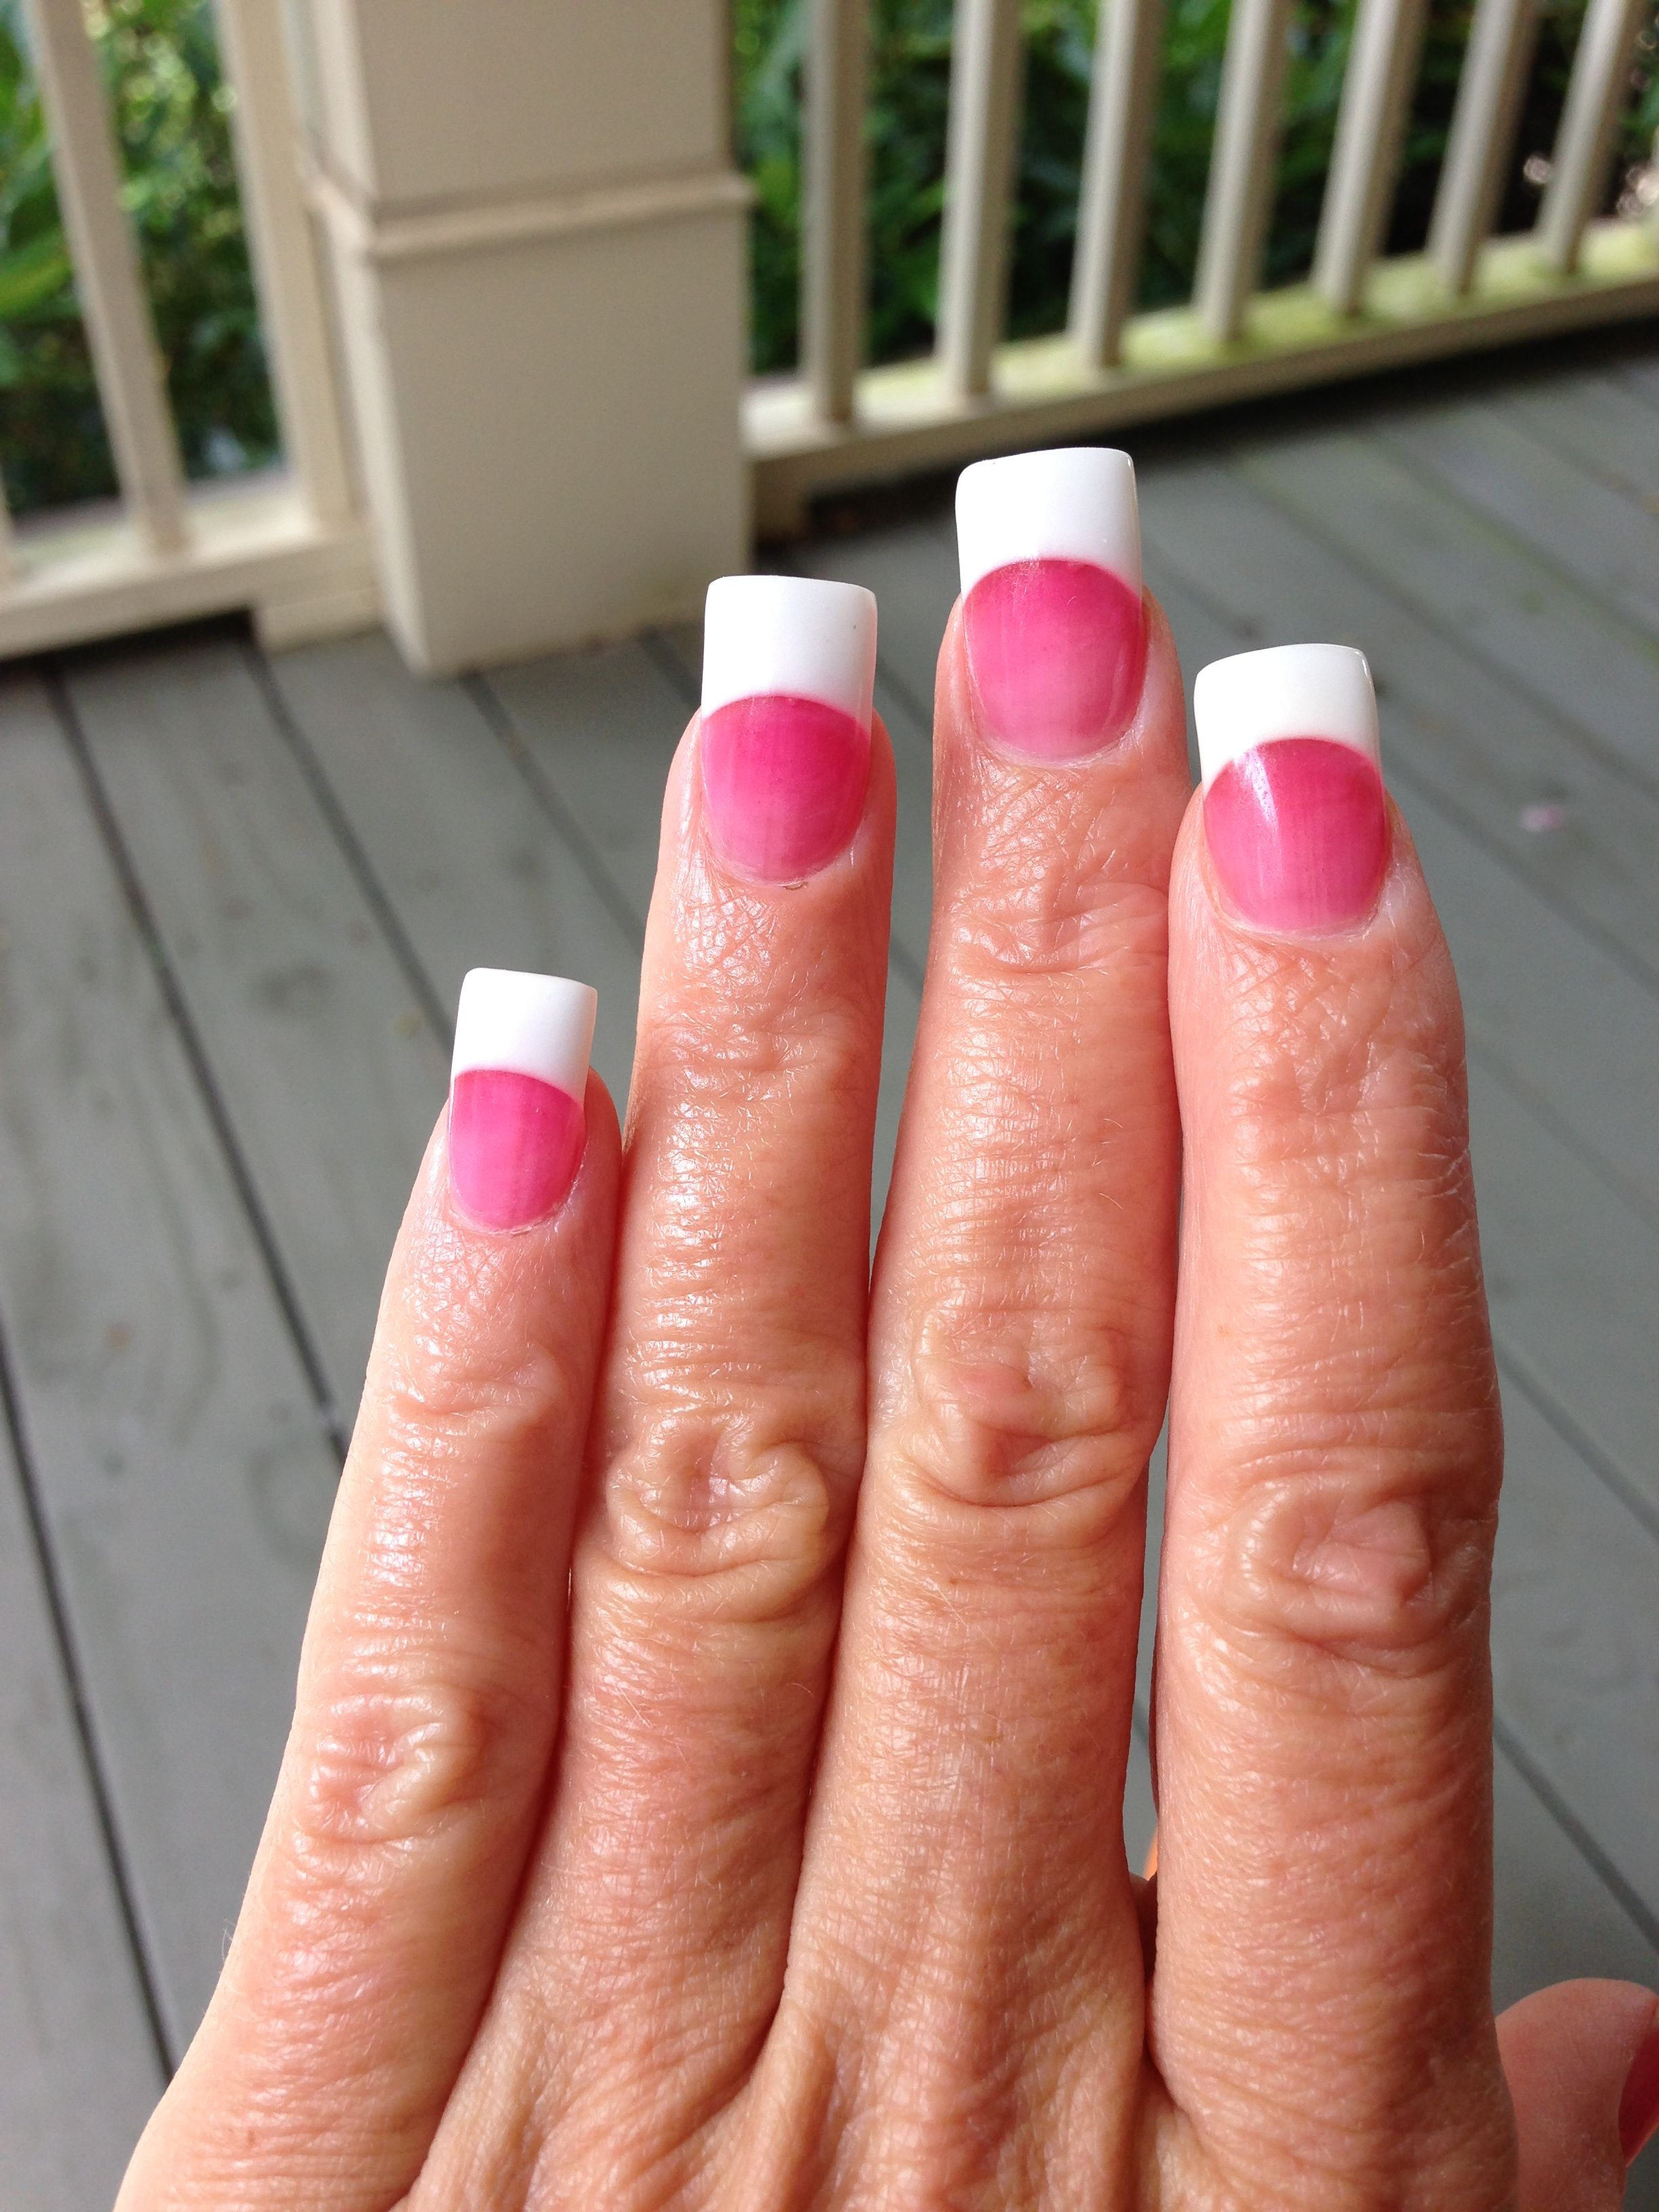 Nails pink and white acrylic French manicure | hi | Pinterest ...